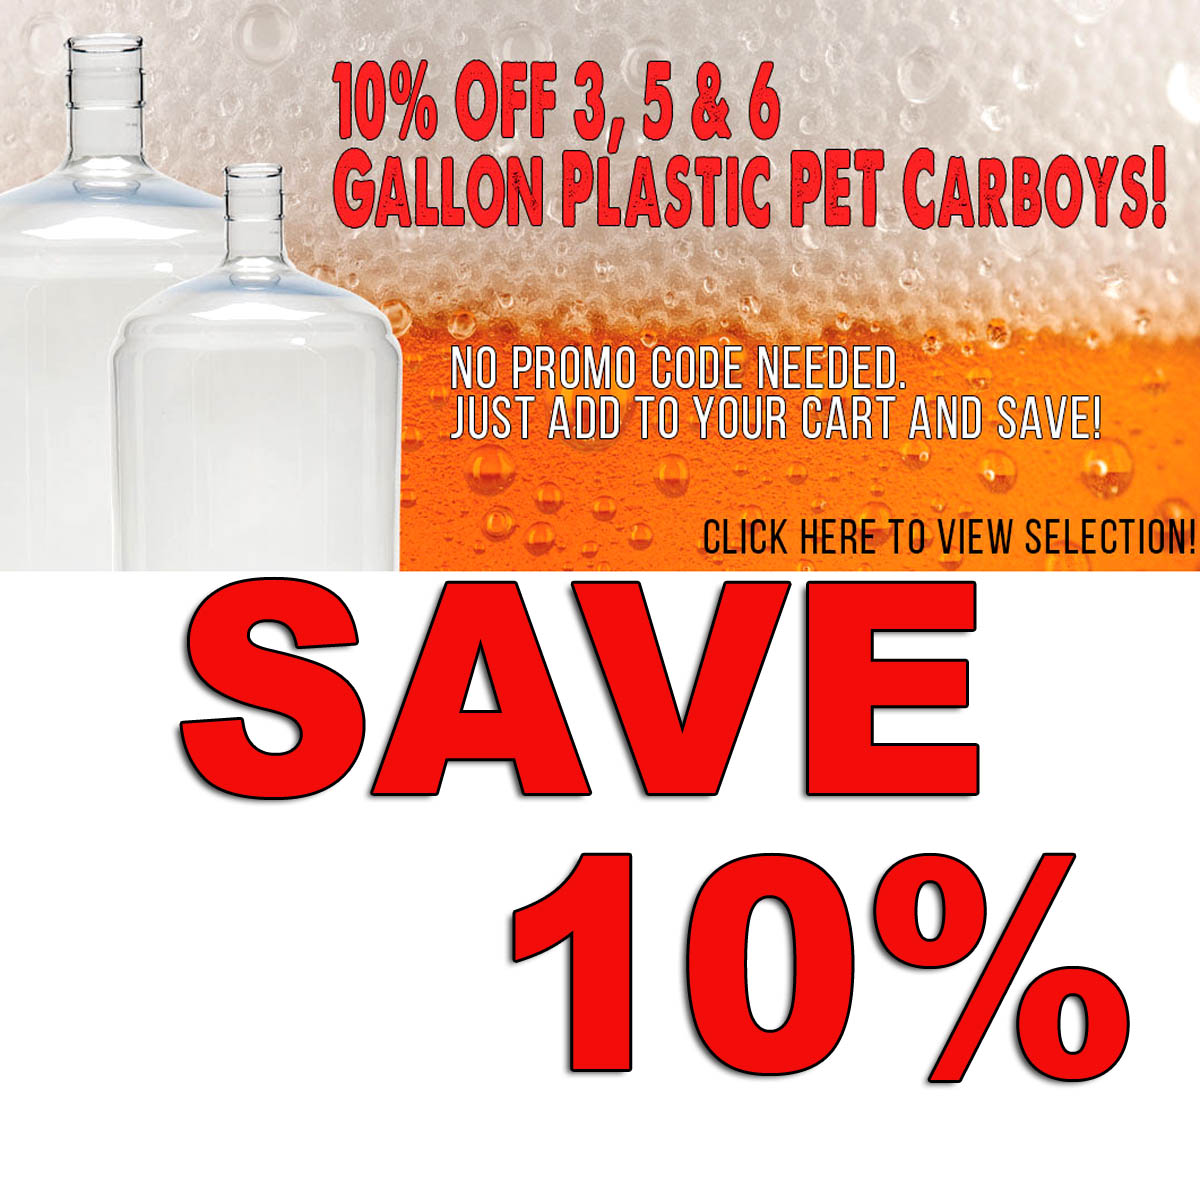 Save 10% On PET Plastic Carboys + Free Shipping Over $59 Coupon Code